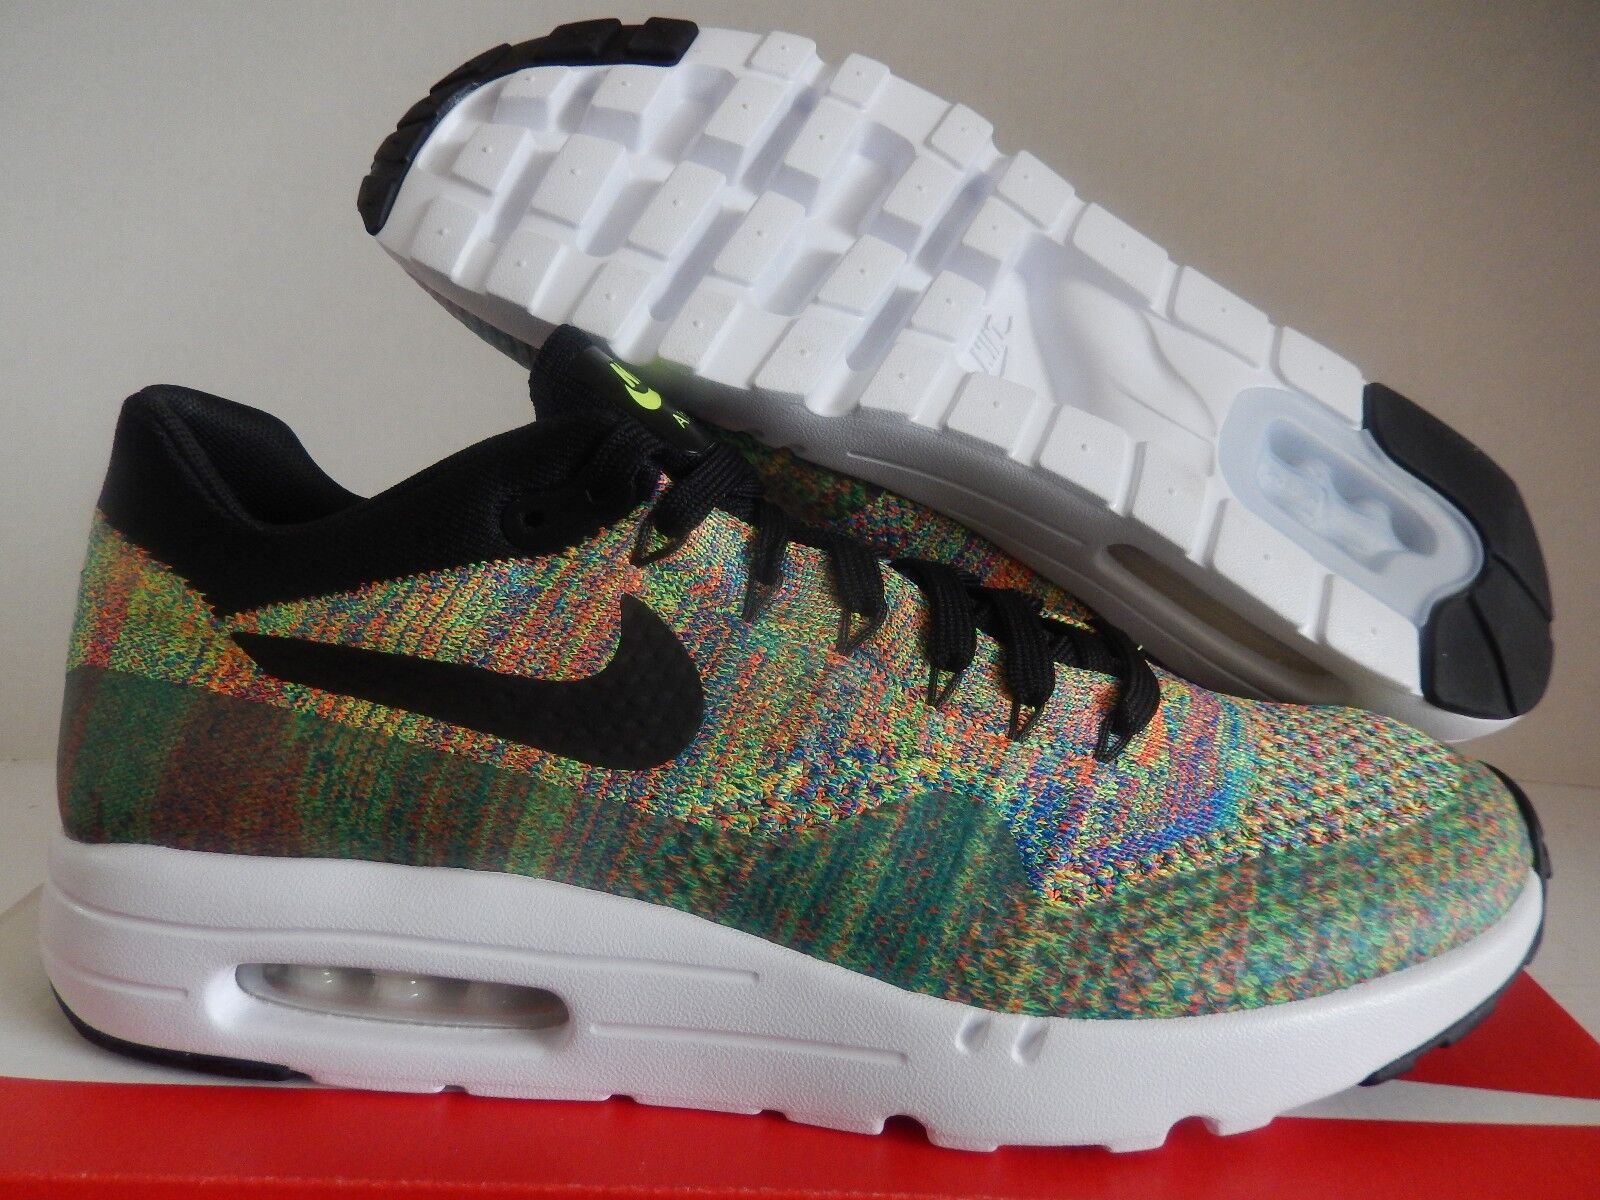 NIKE AIR MAX 1 FLYKNIT ID  AIR MAX DAY 3-26  SZ 11.5  MULTI COLOR  [940379-991]